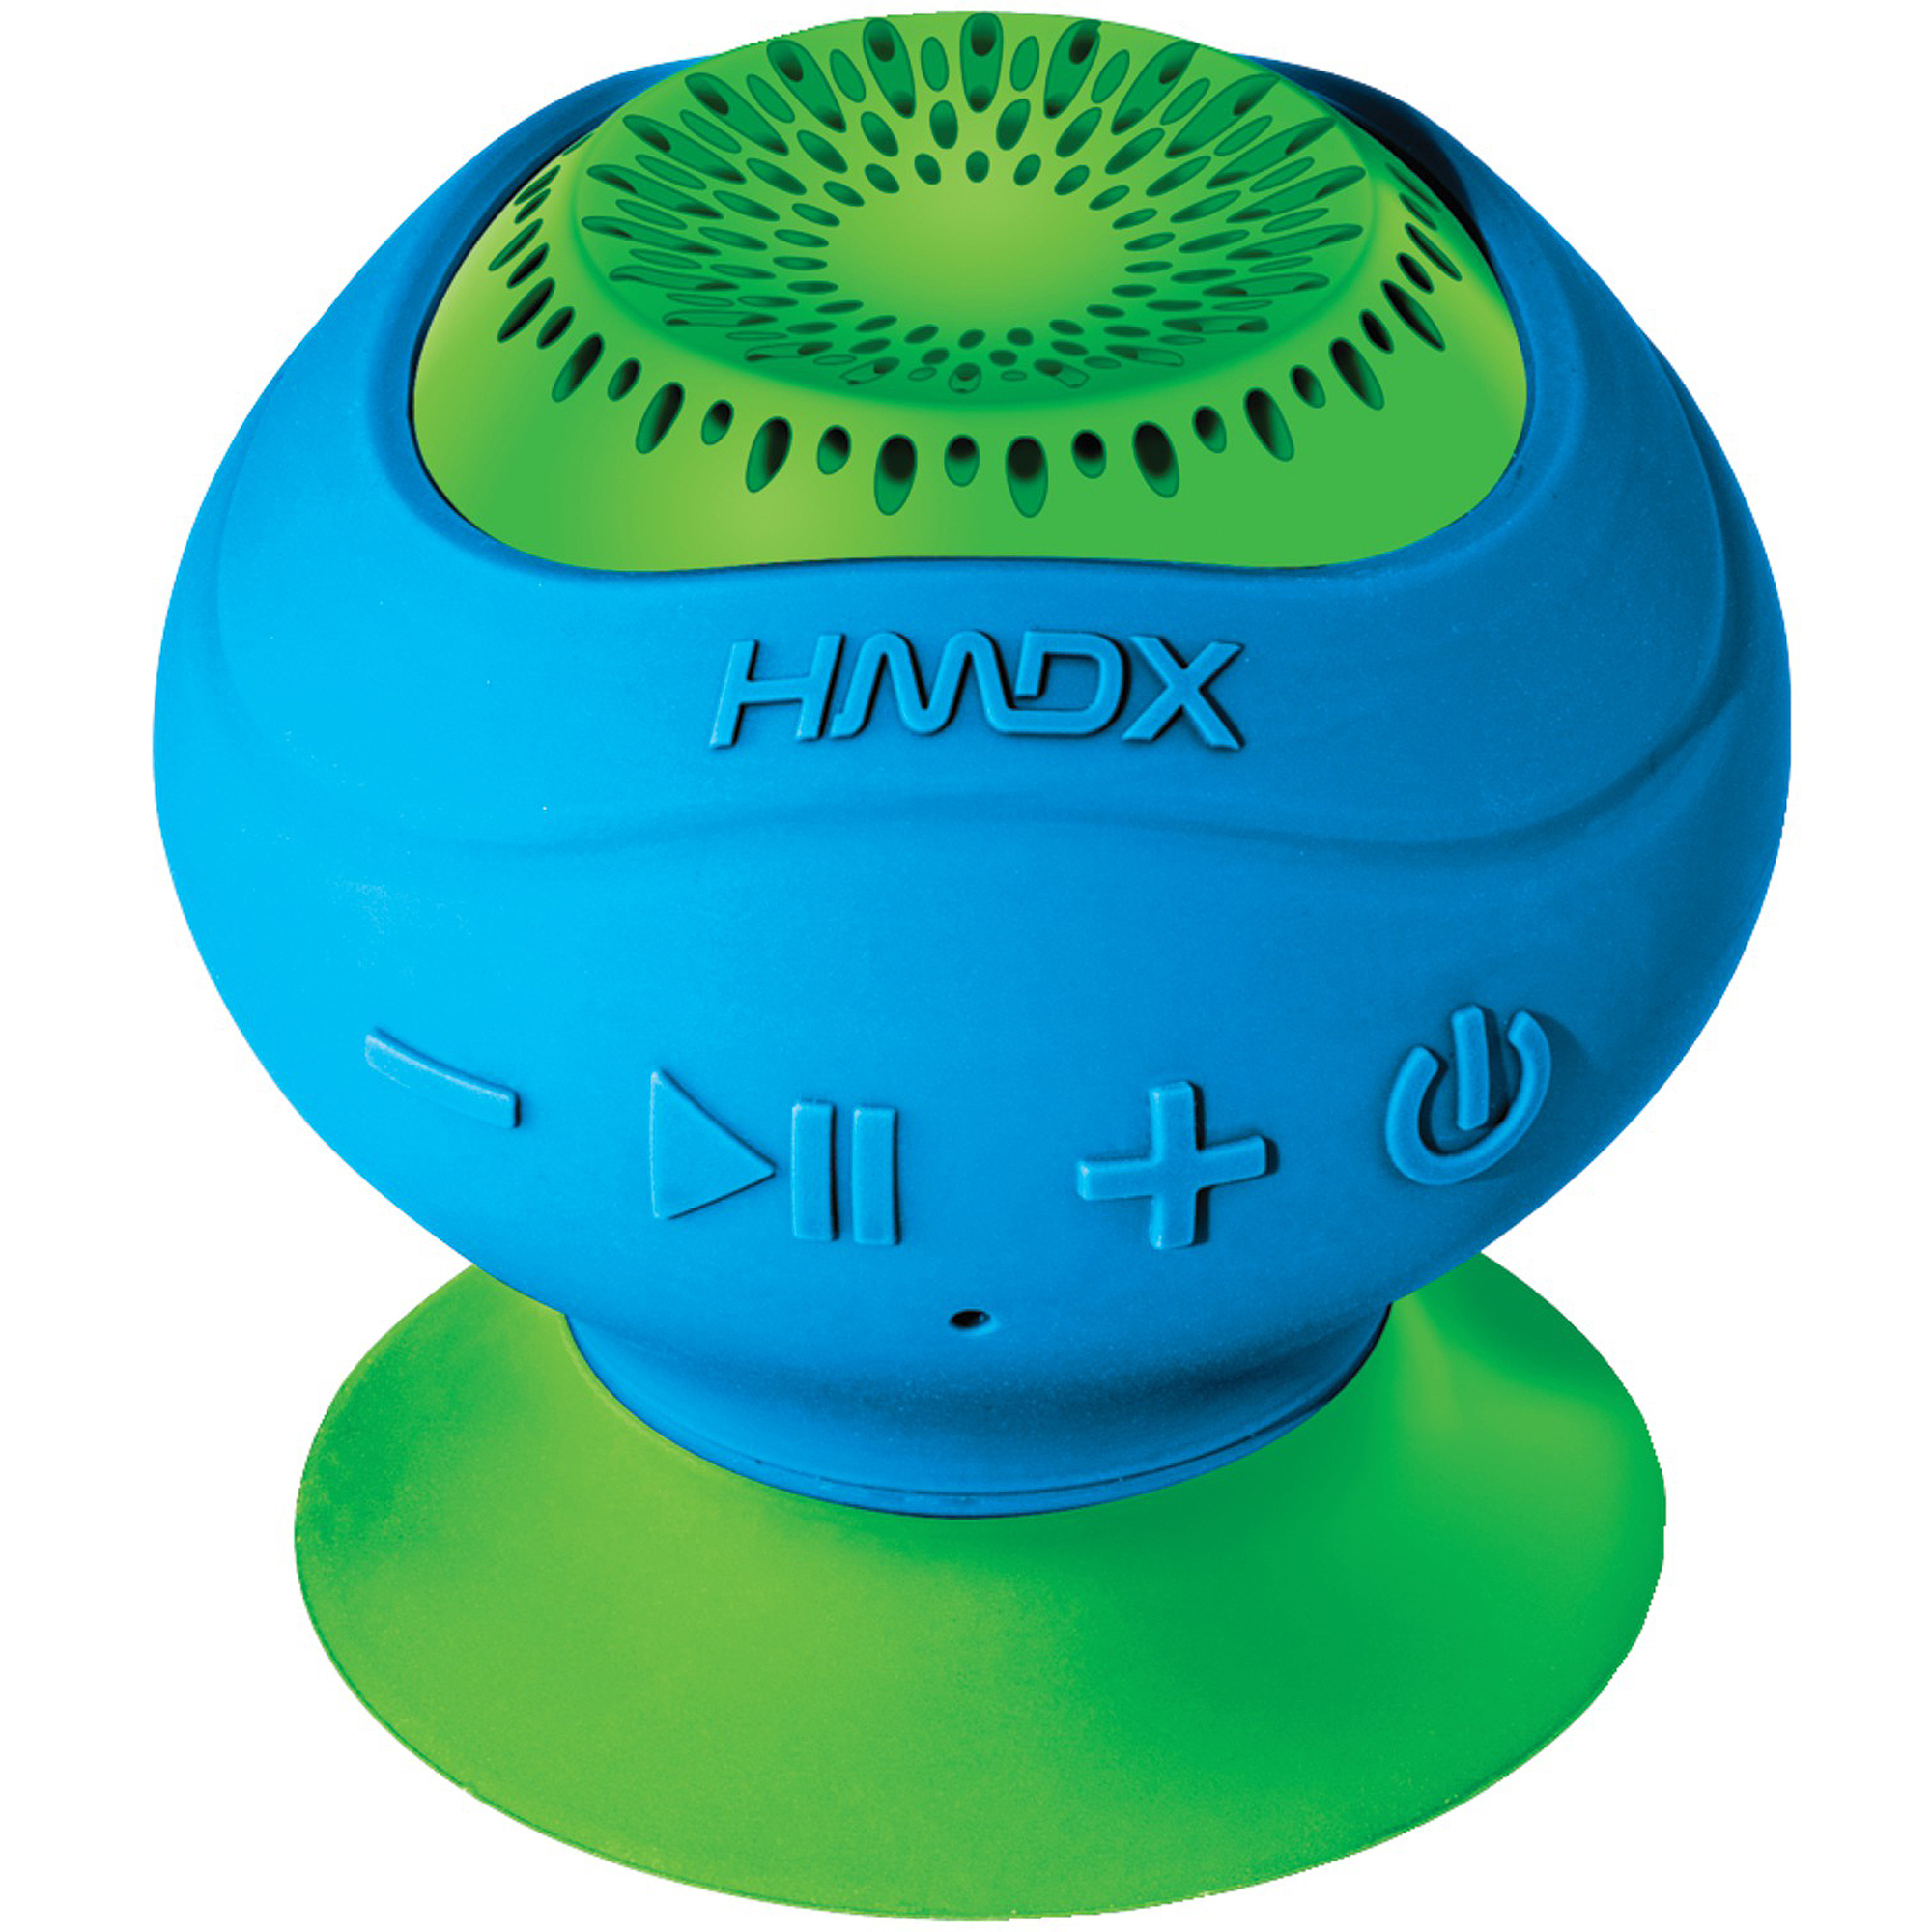 HMDX Hx-p120bl Neutron Bluetooth Speaker